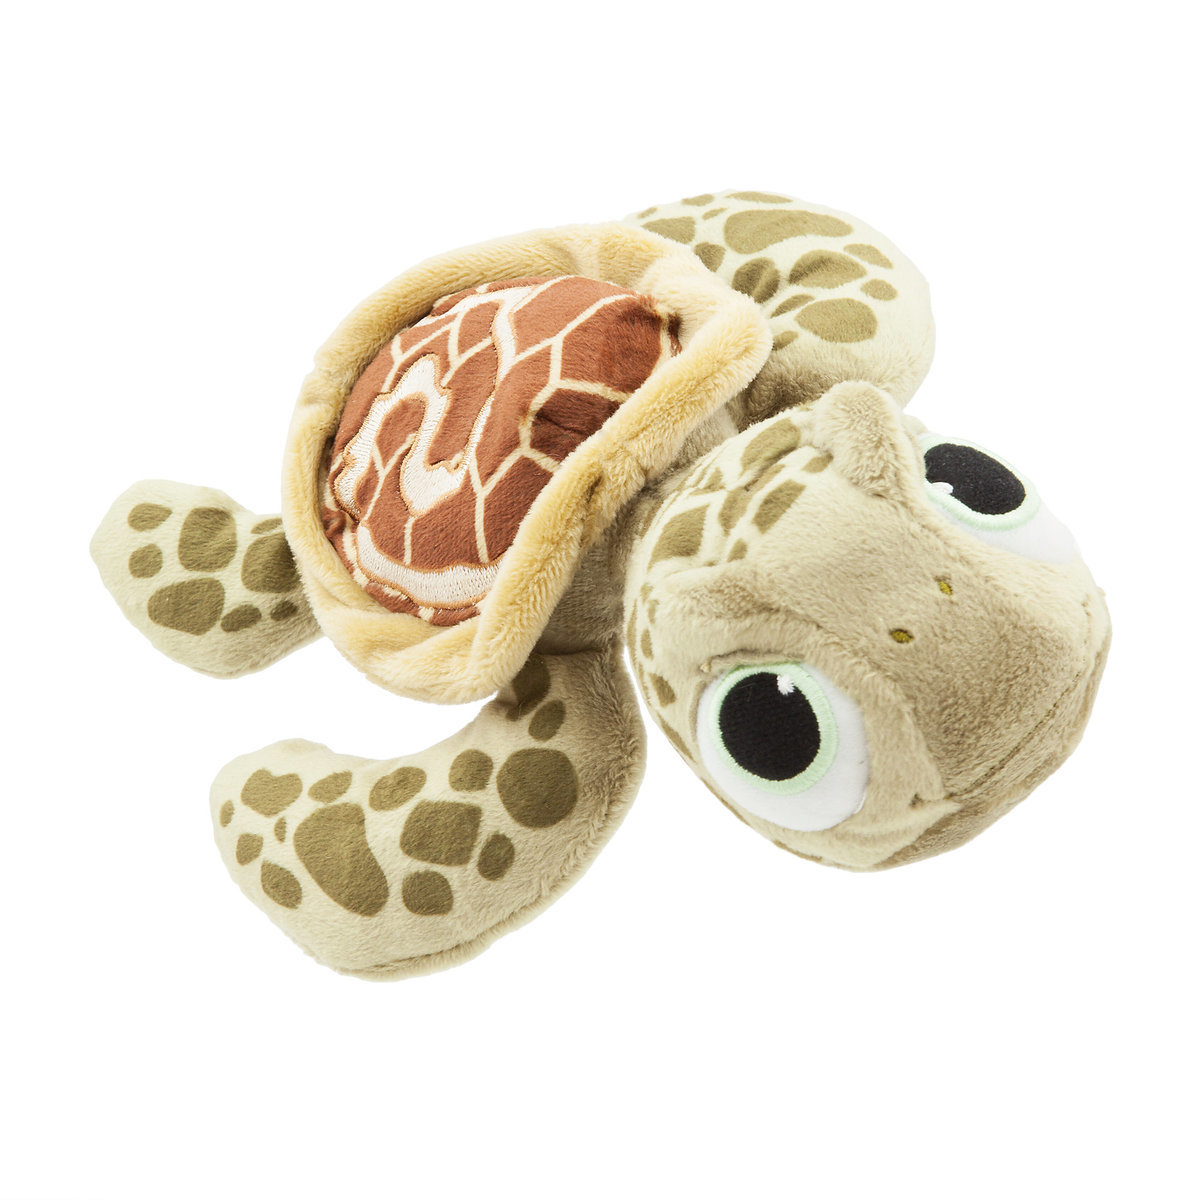 Disney Moana Baby Sea Turtle Plush Genuine Disney